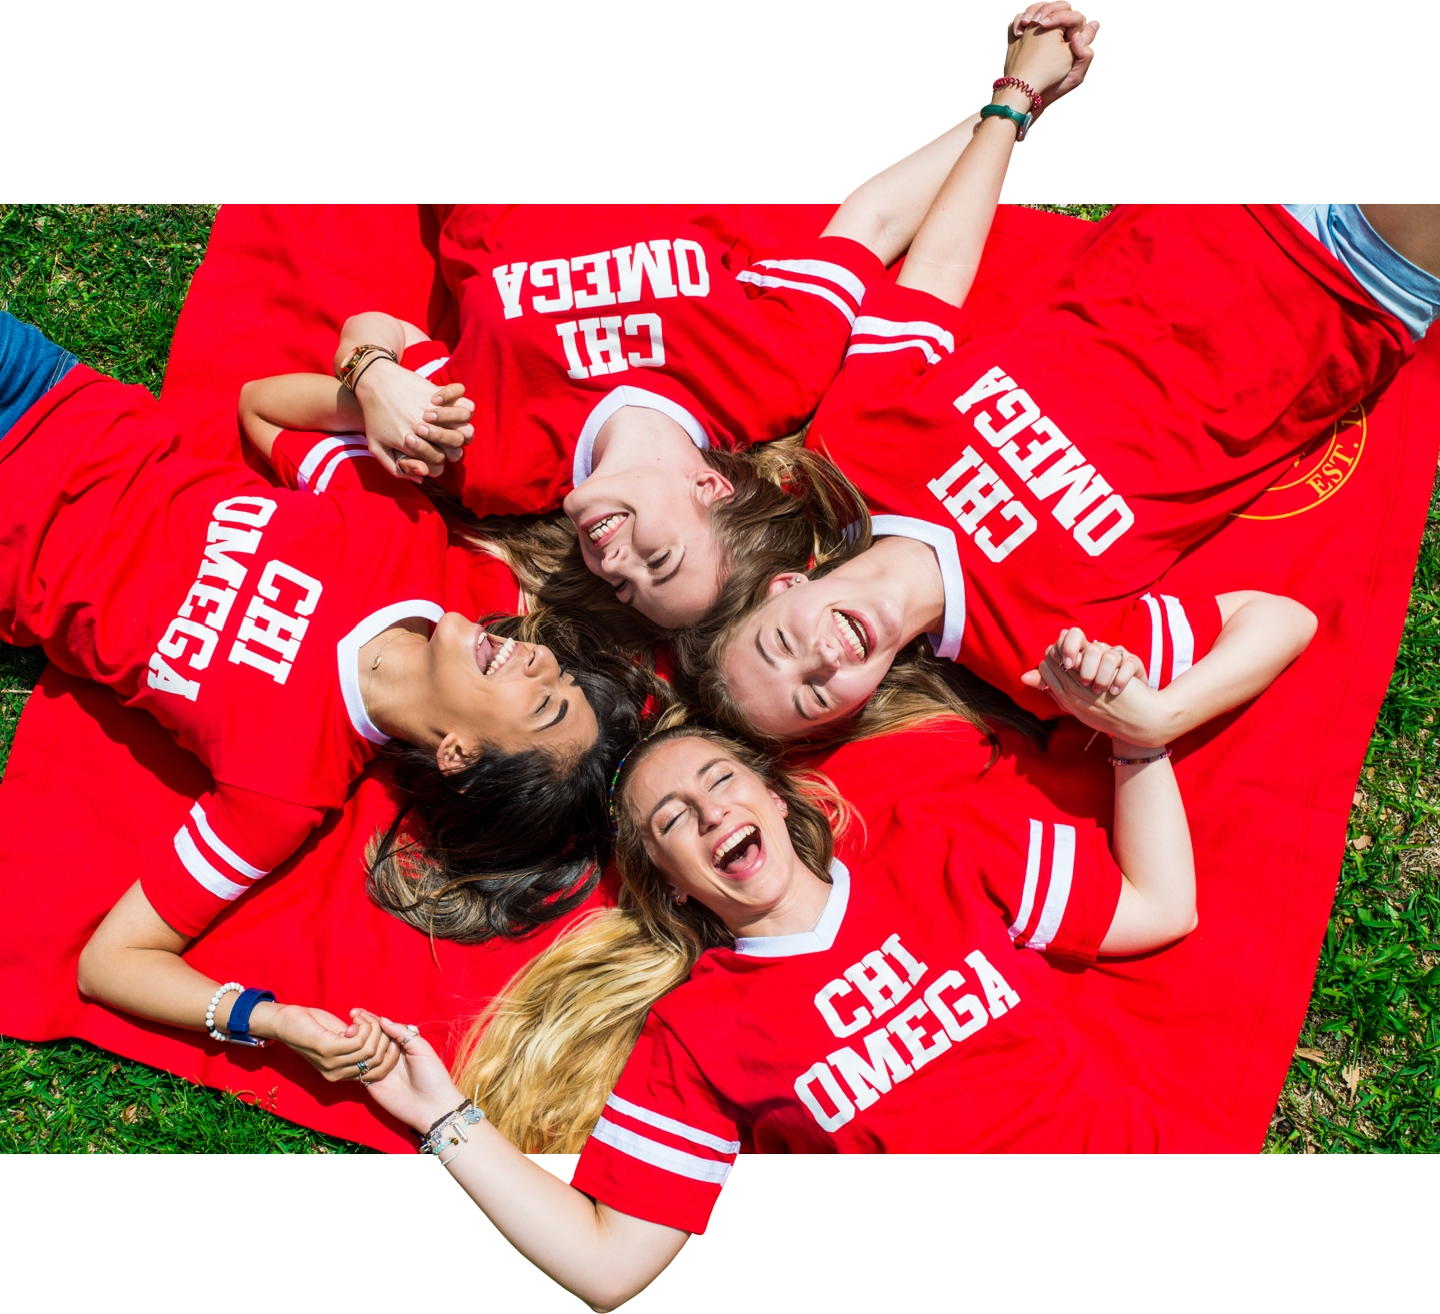 Four Chi Omega sorority students laying on the grass holding hands.